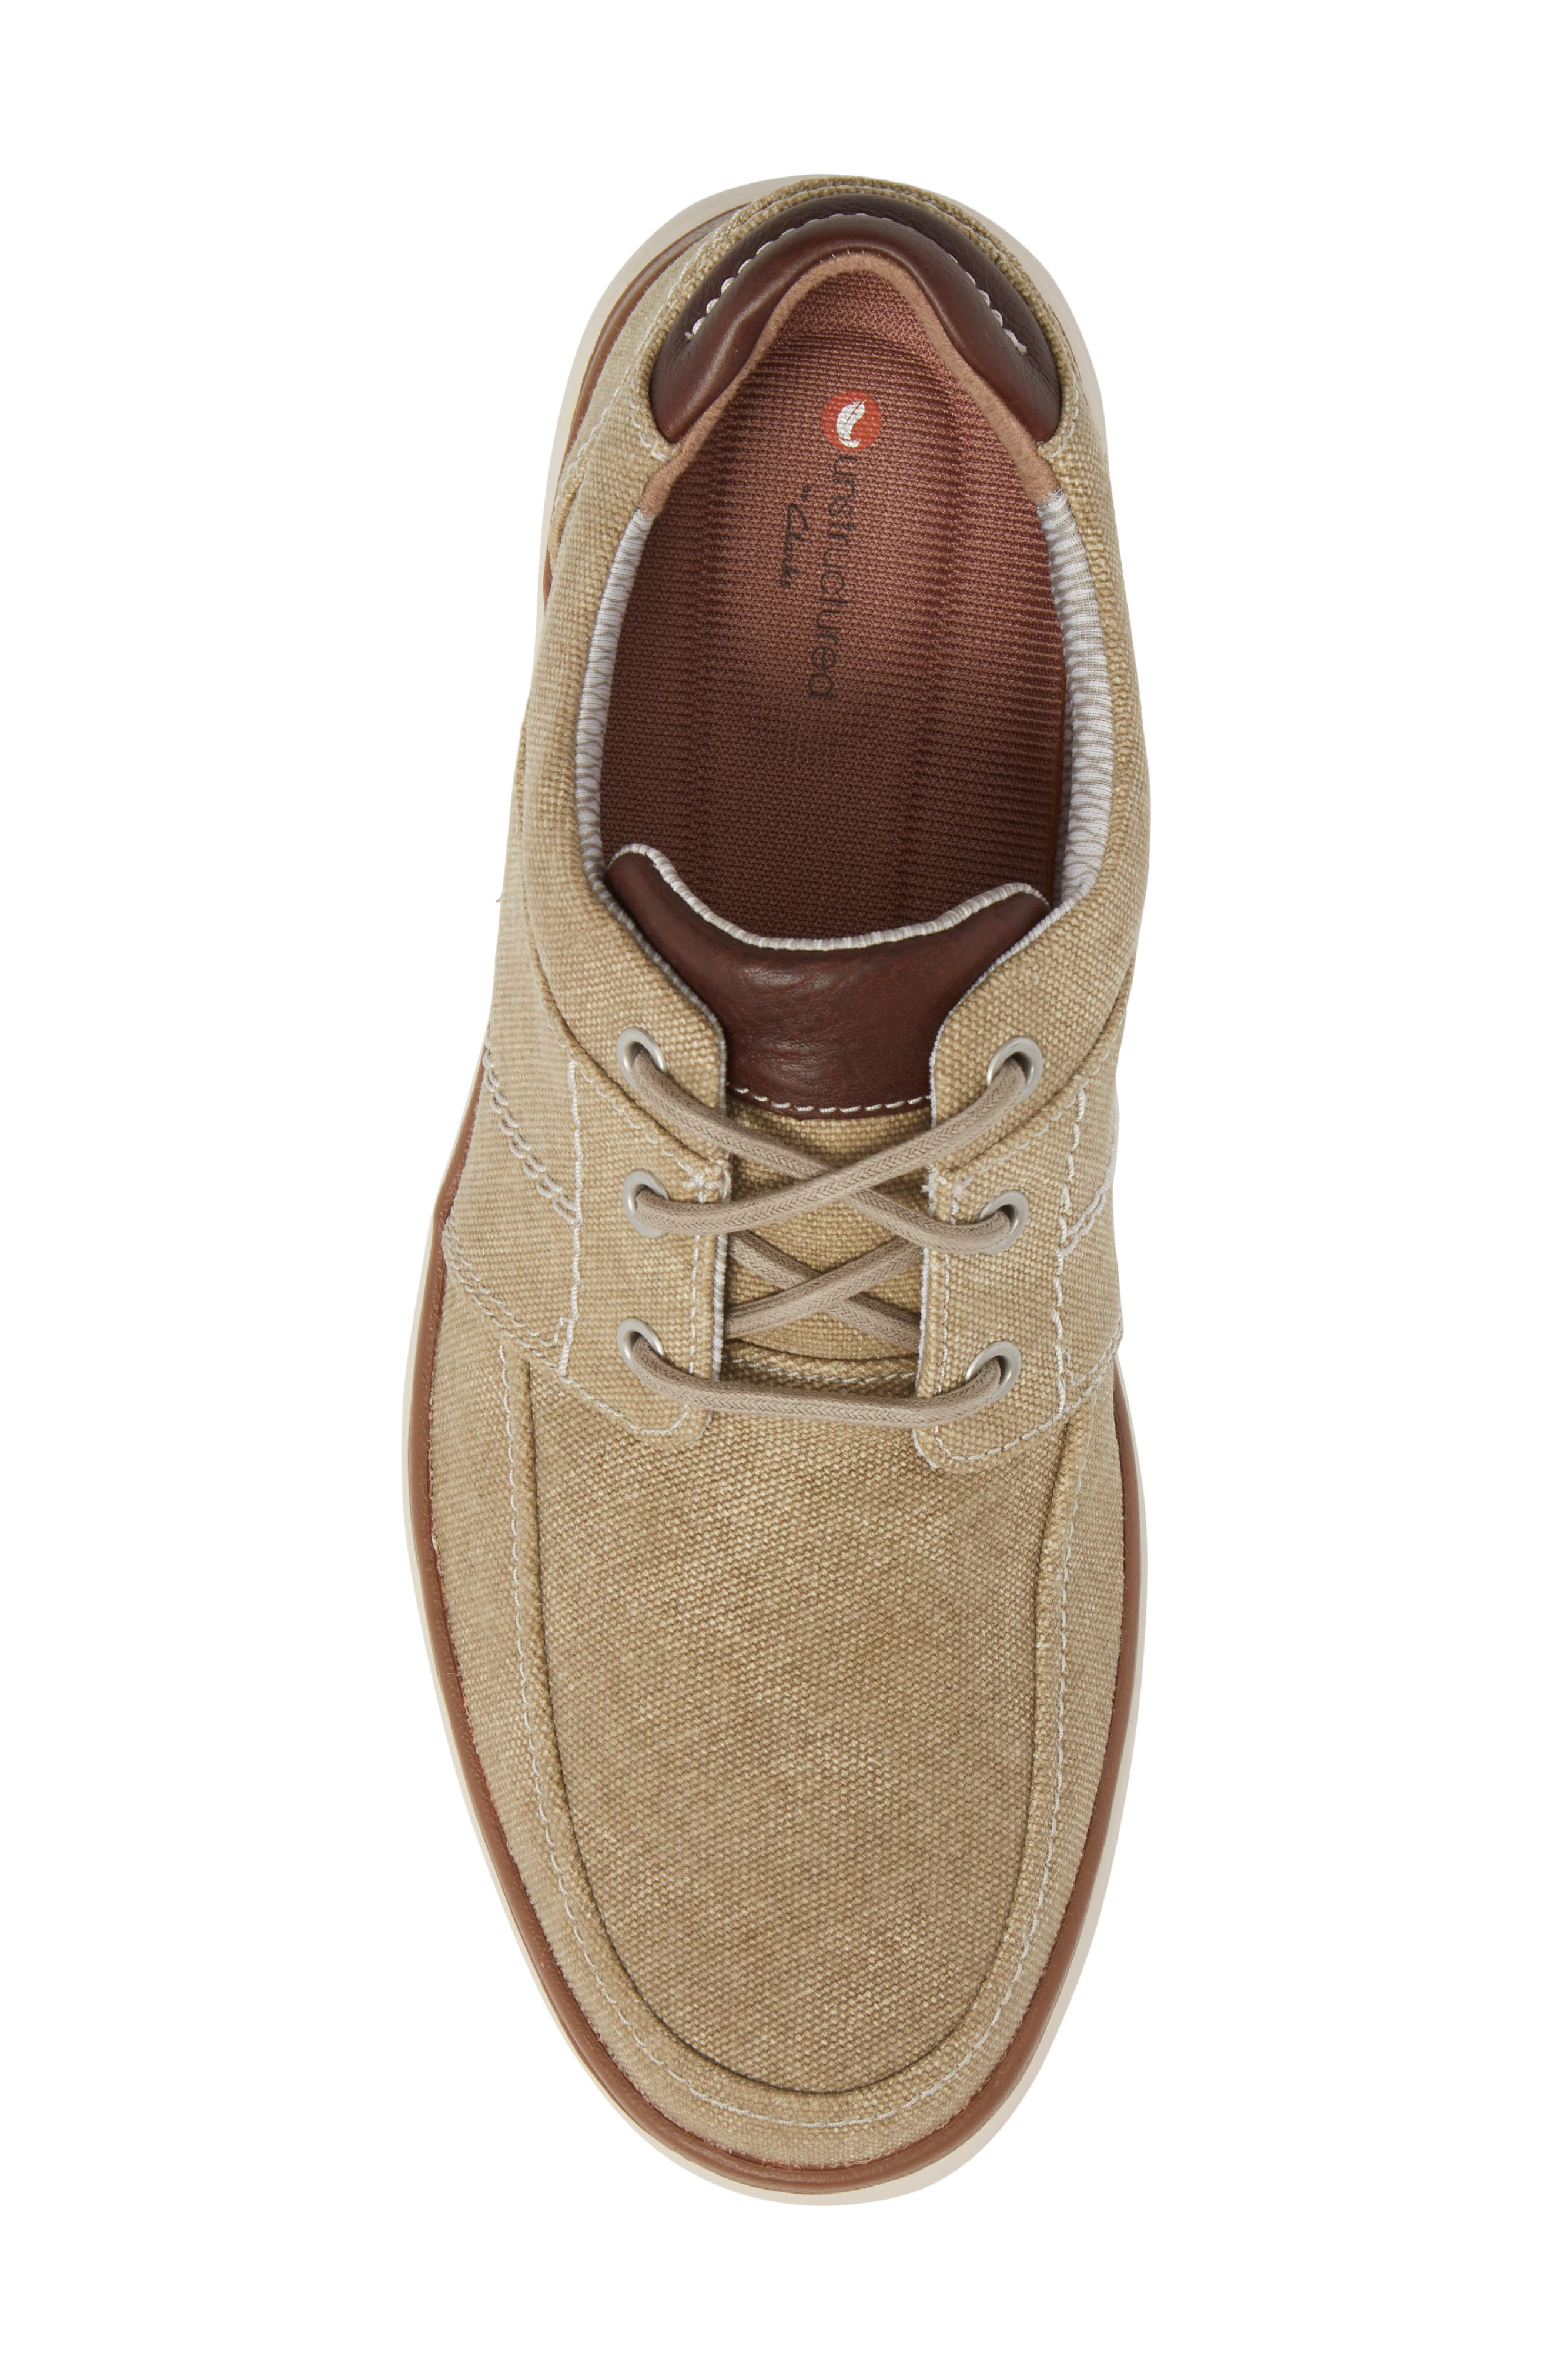 Clarks<sup>®</sup> Unabode Form Sneaker,                             Alternate thumbnail 5, color,                             SAND FABRIC